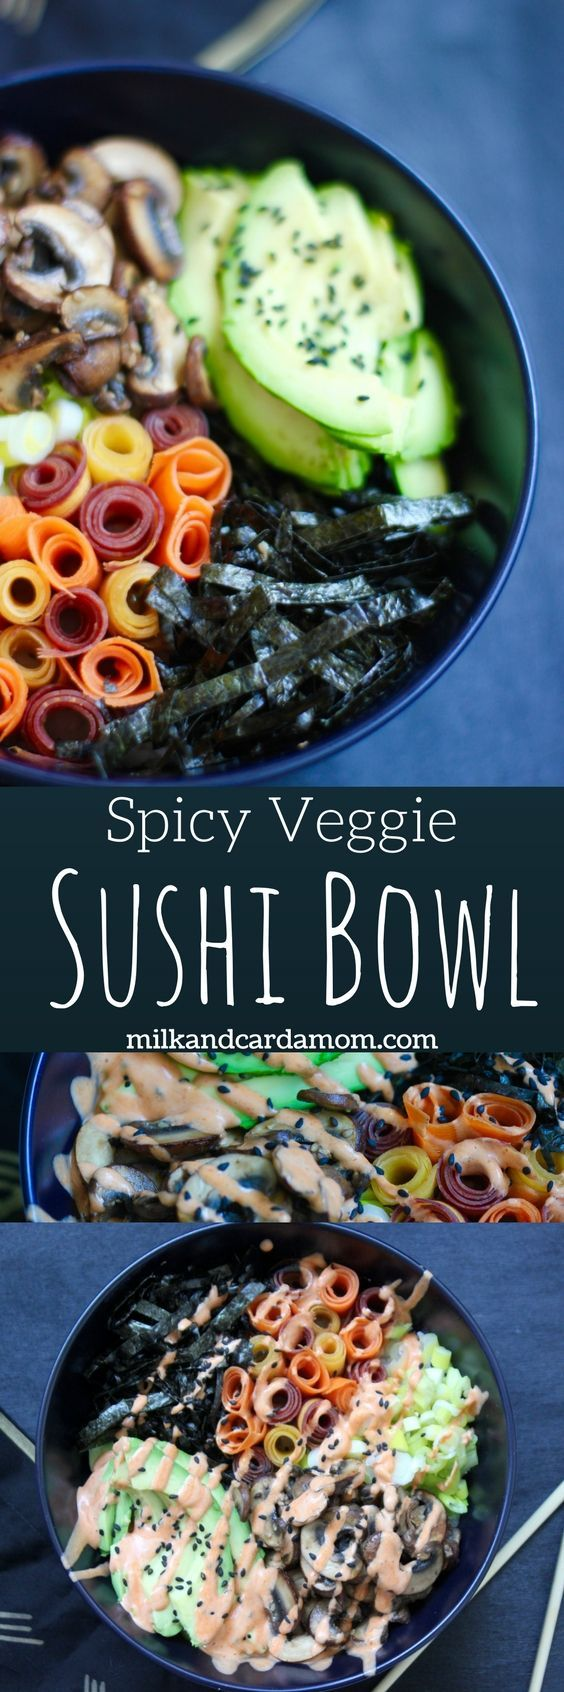 Load up on your veggies with this vegan spicy sushi bowl!